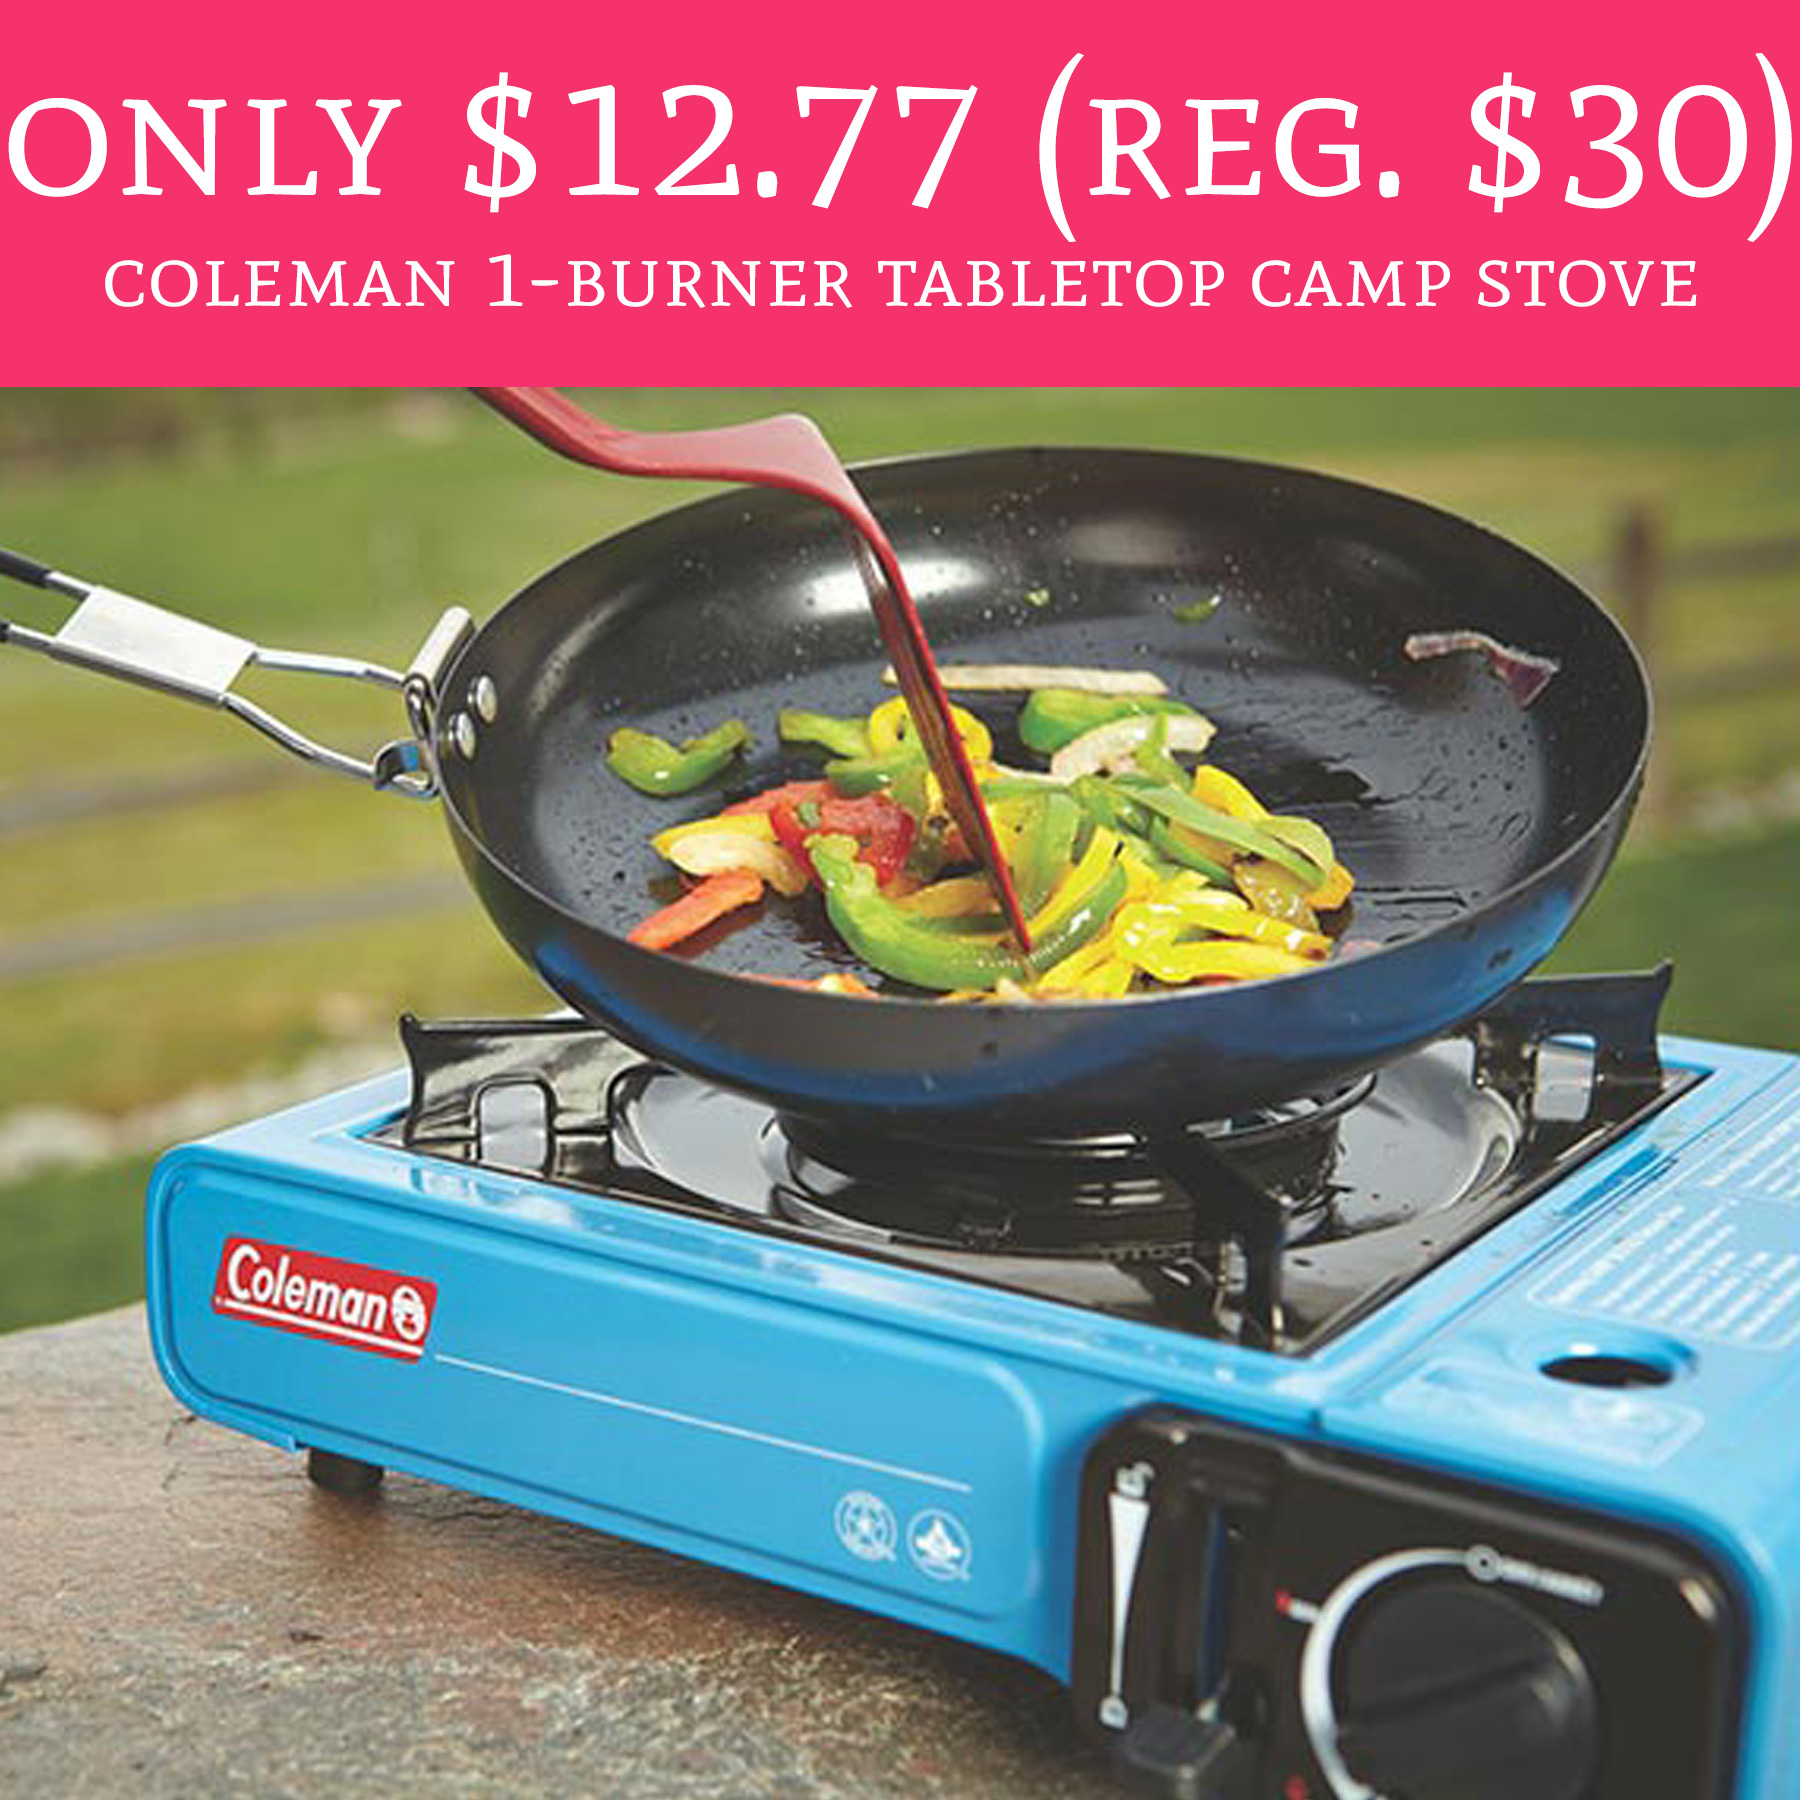 Are You Planning A Camping Trip?!